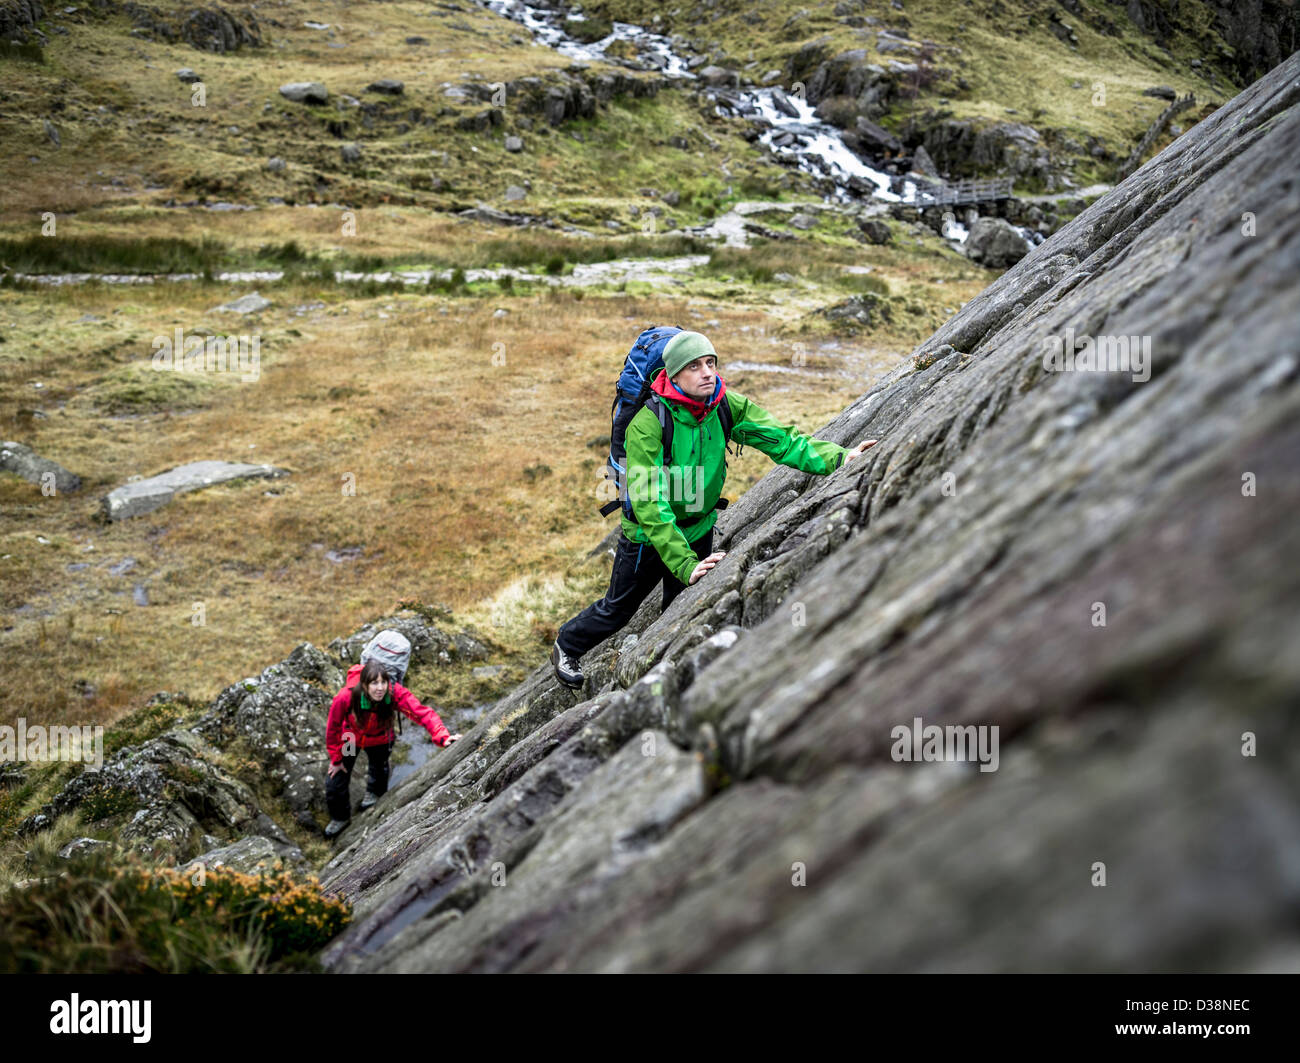 Hikers scaling steep rock face - Stock Image